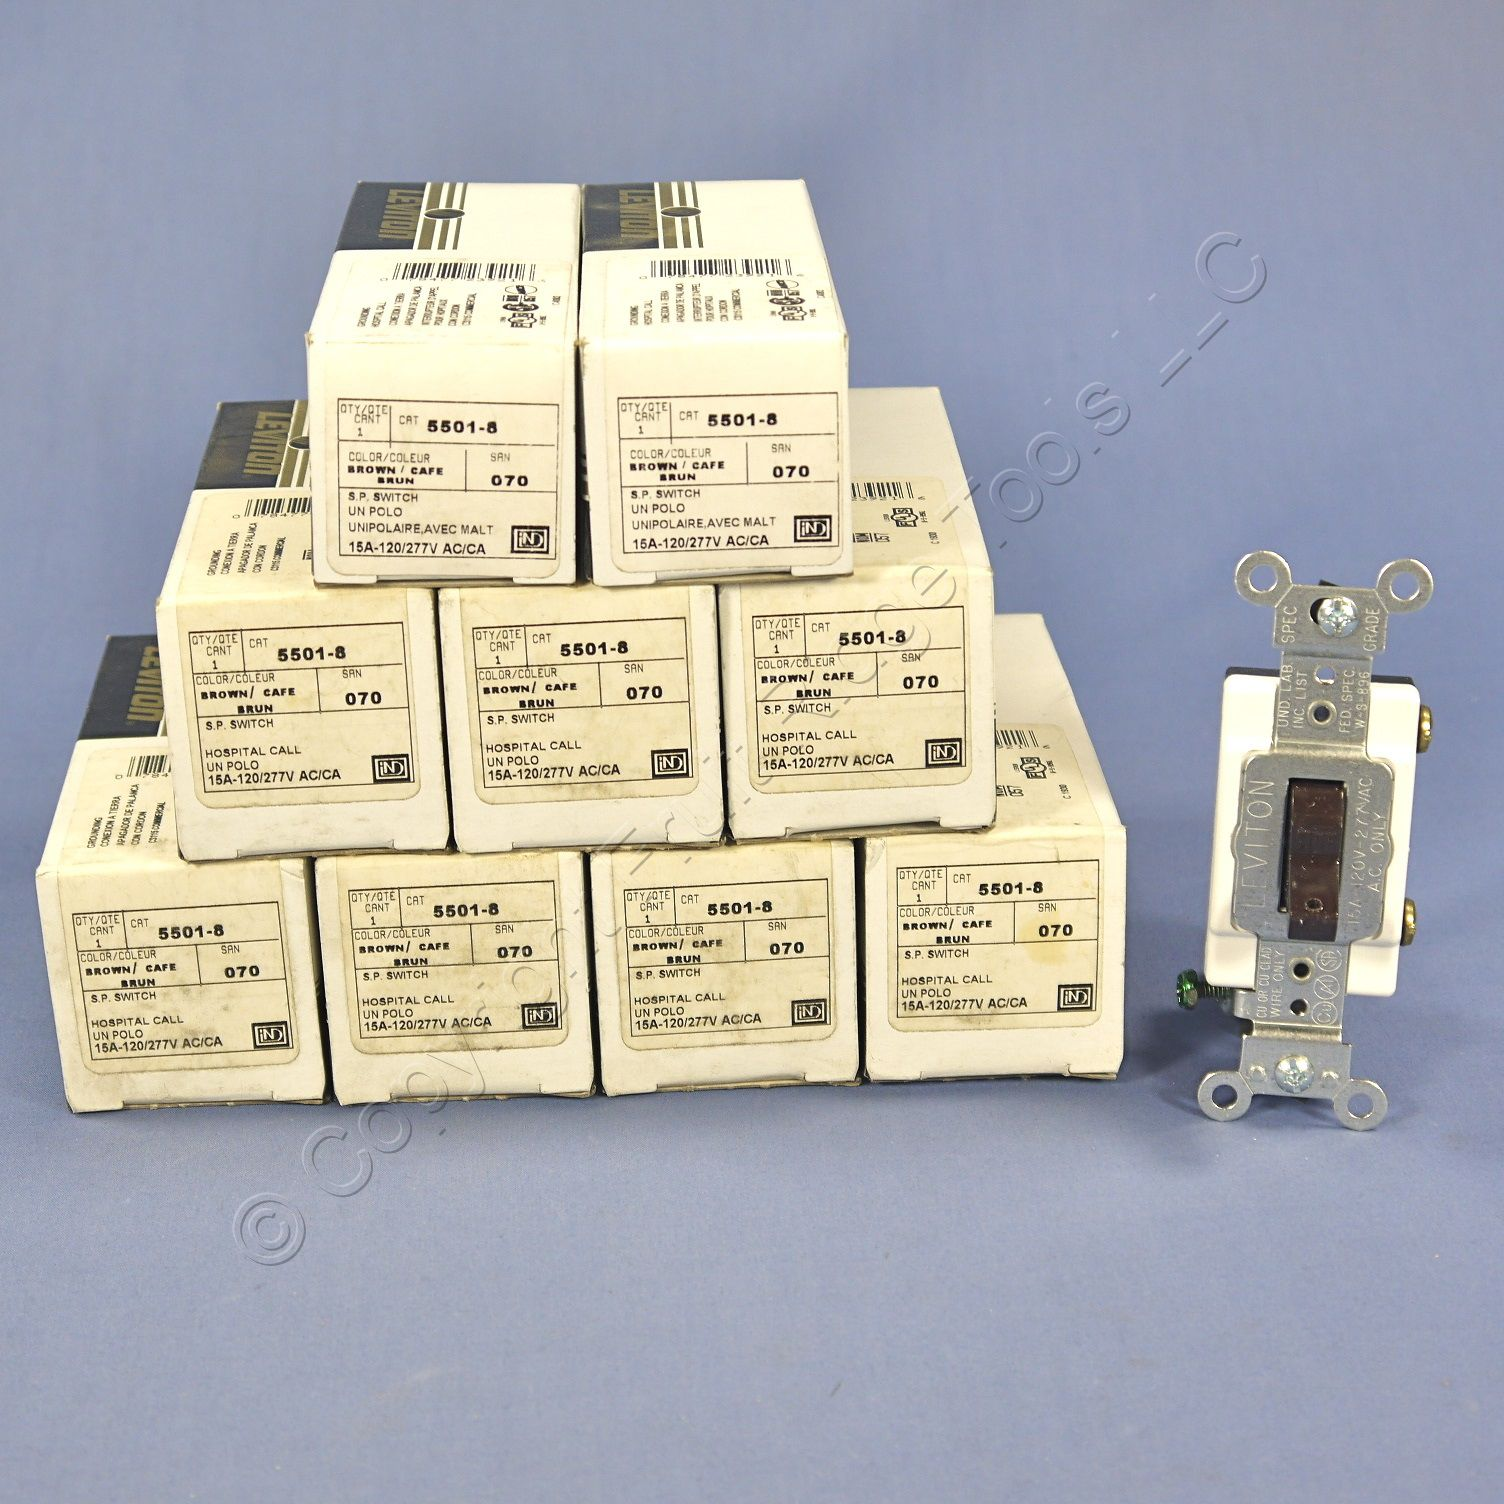 10 Brown Leviton Toggle HOSPITAL CALL Switches Single Pole 15A 5501-8